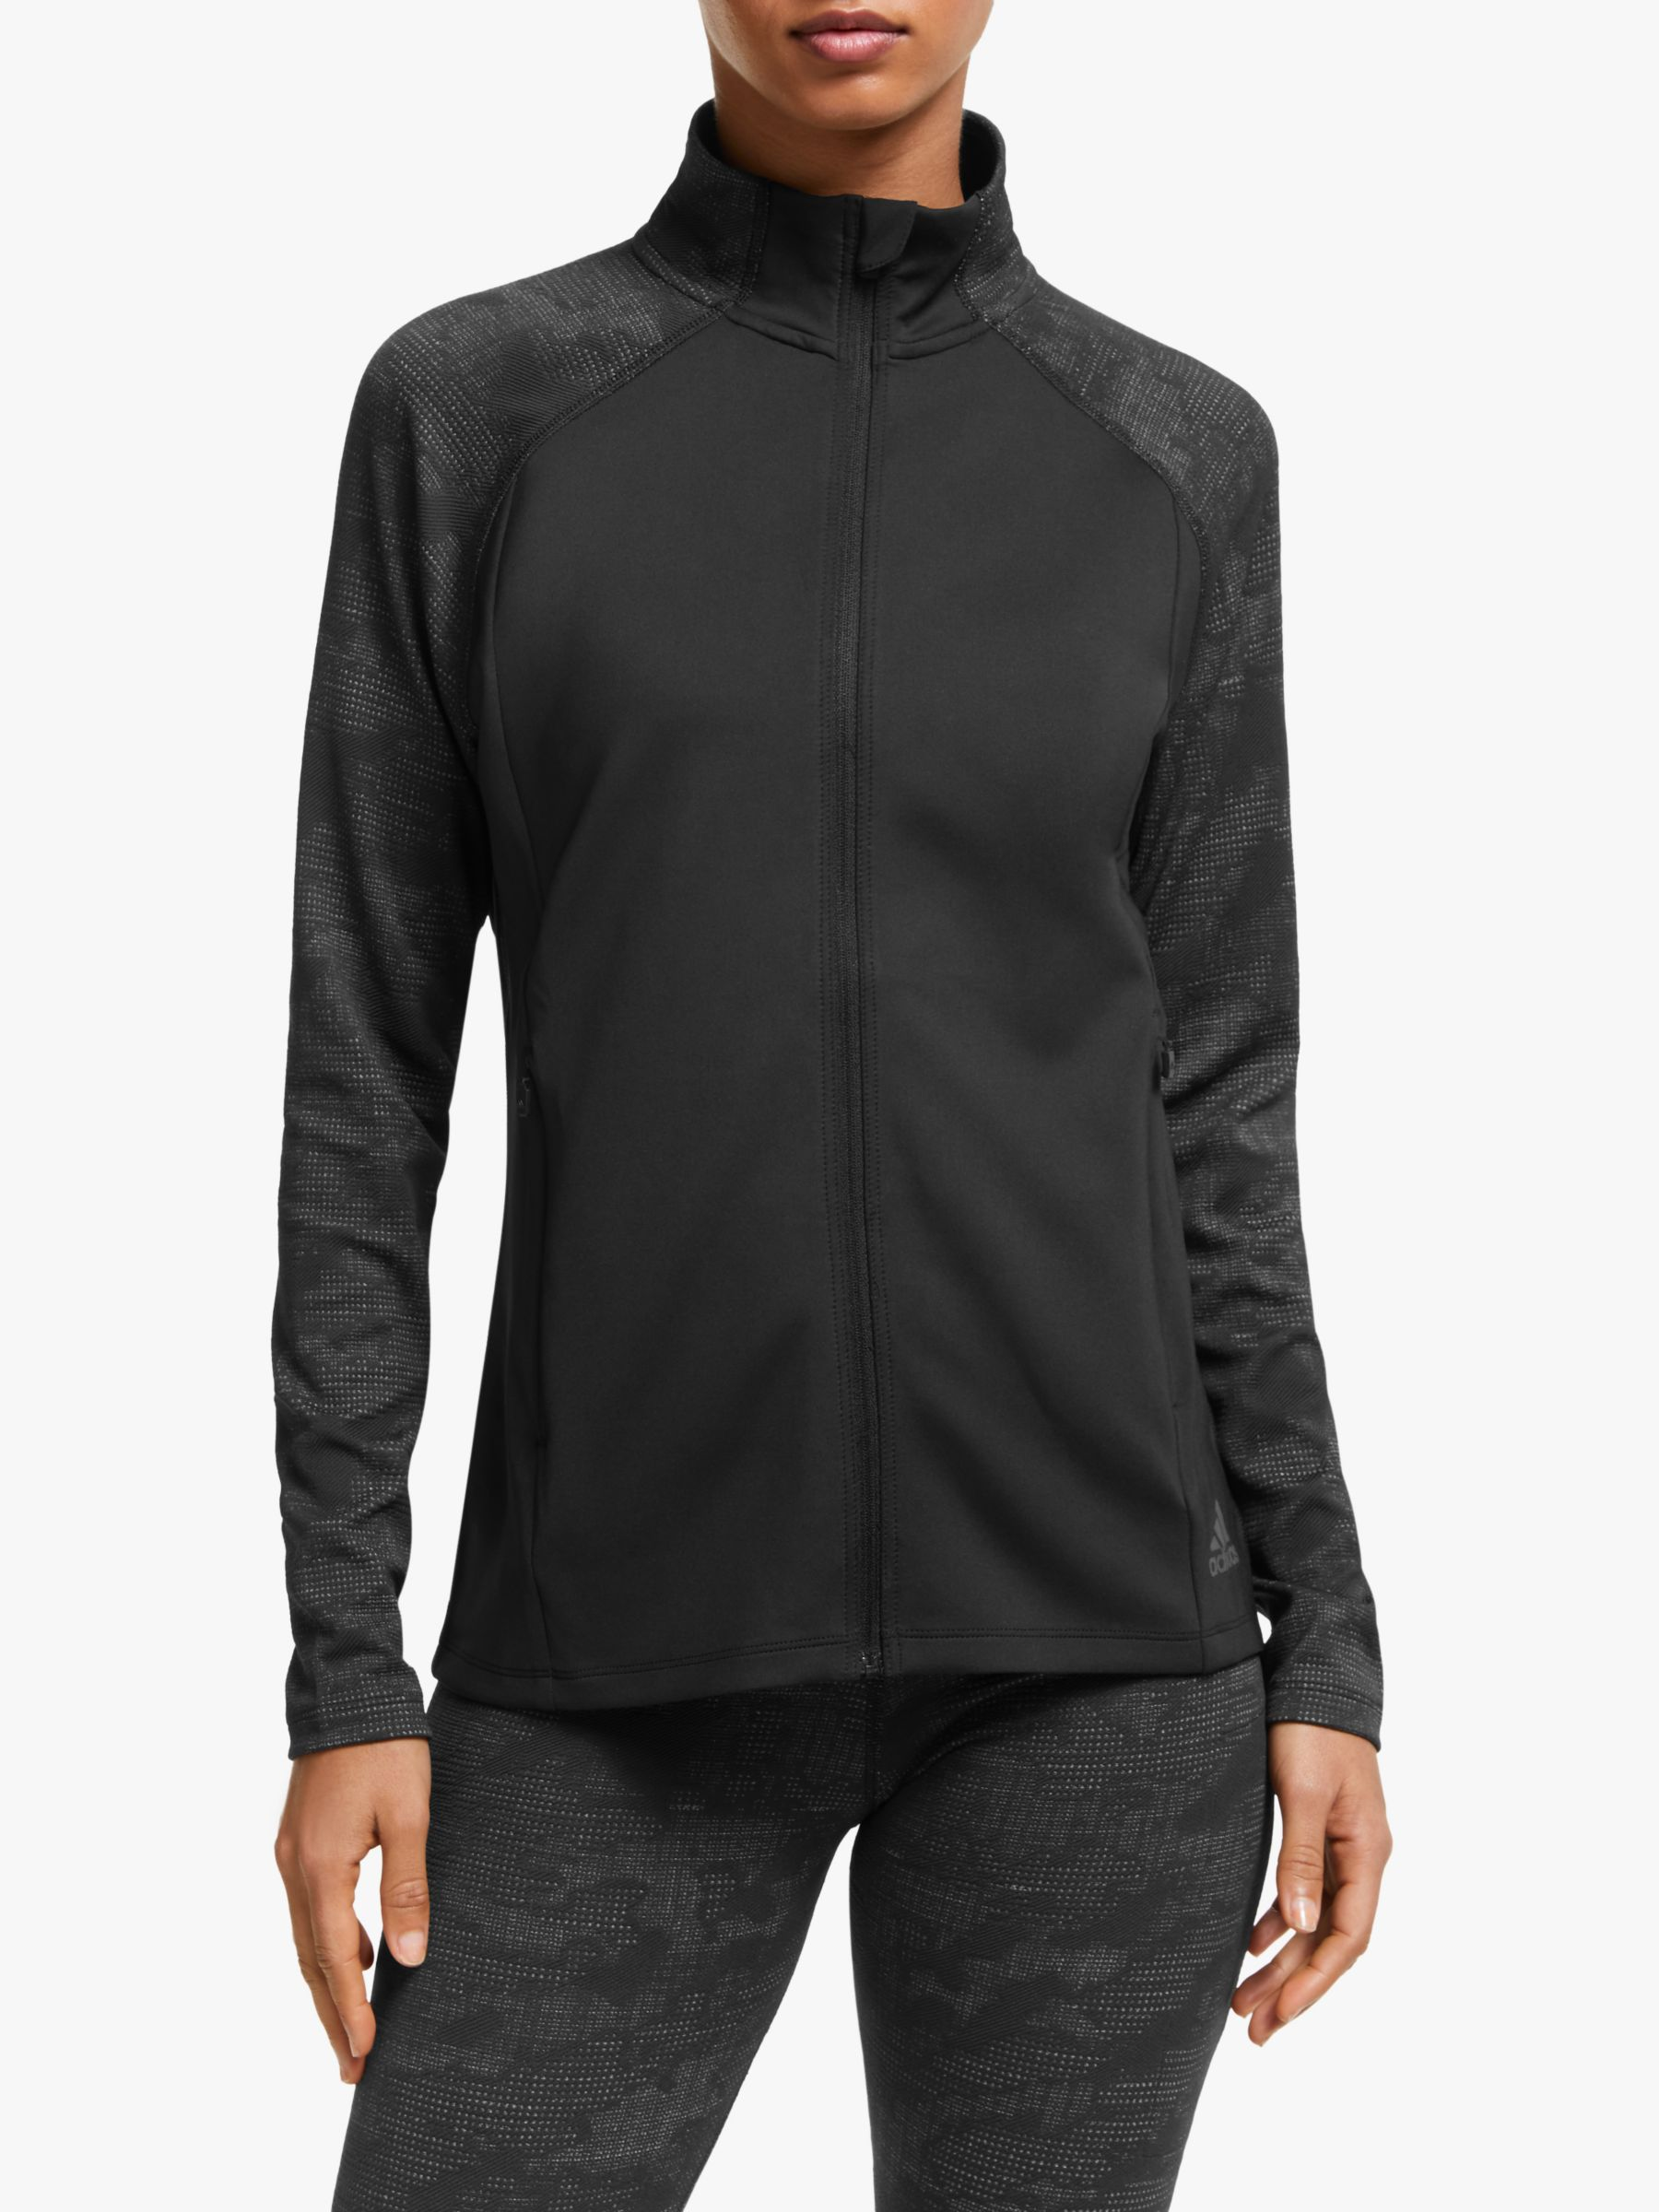 Adidas adidas Climalite Full-Zip Jacquard Women's Training Jacket, Black